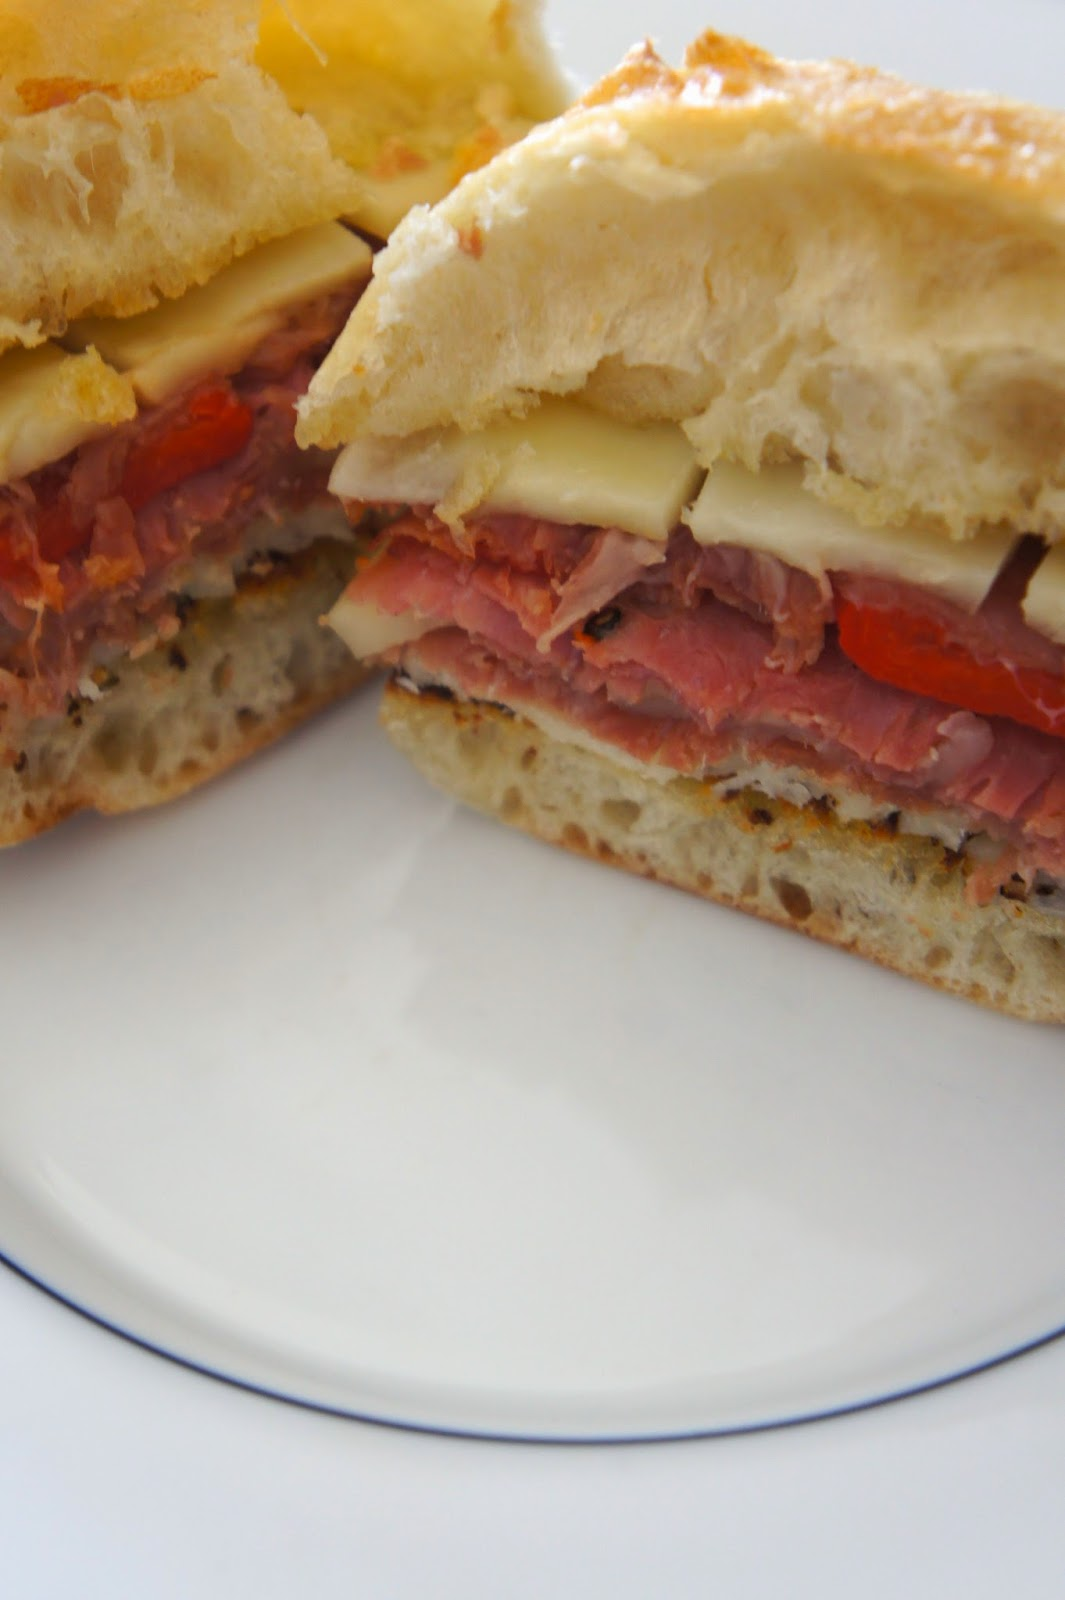 Italian Sandwich: Savory Sweet and Satisfying